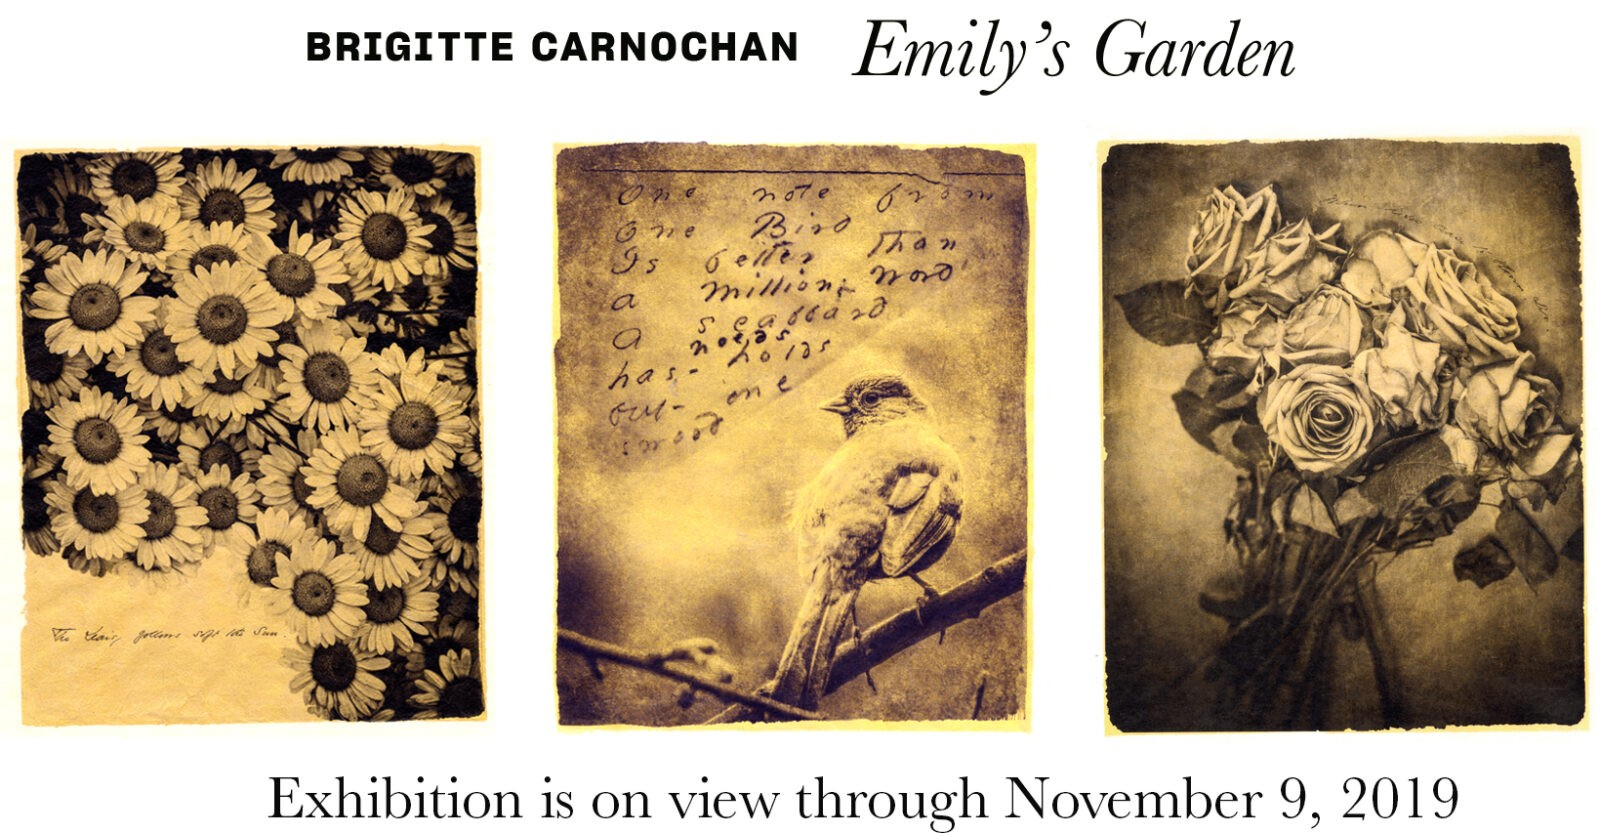 show card with info on Brigitte Carnochan's exhibition on view through November 9, 2019